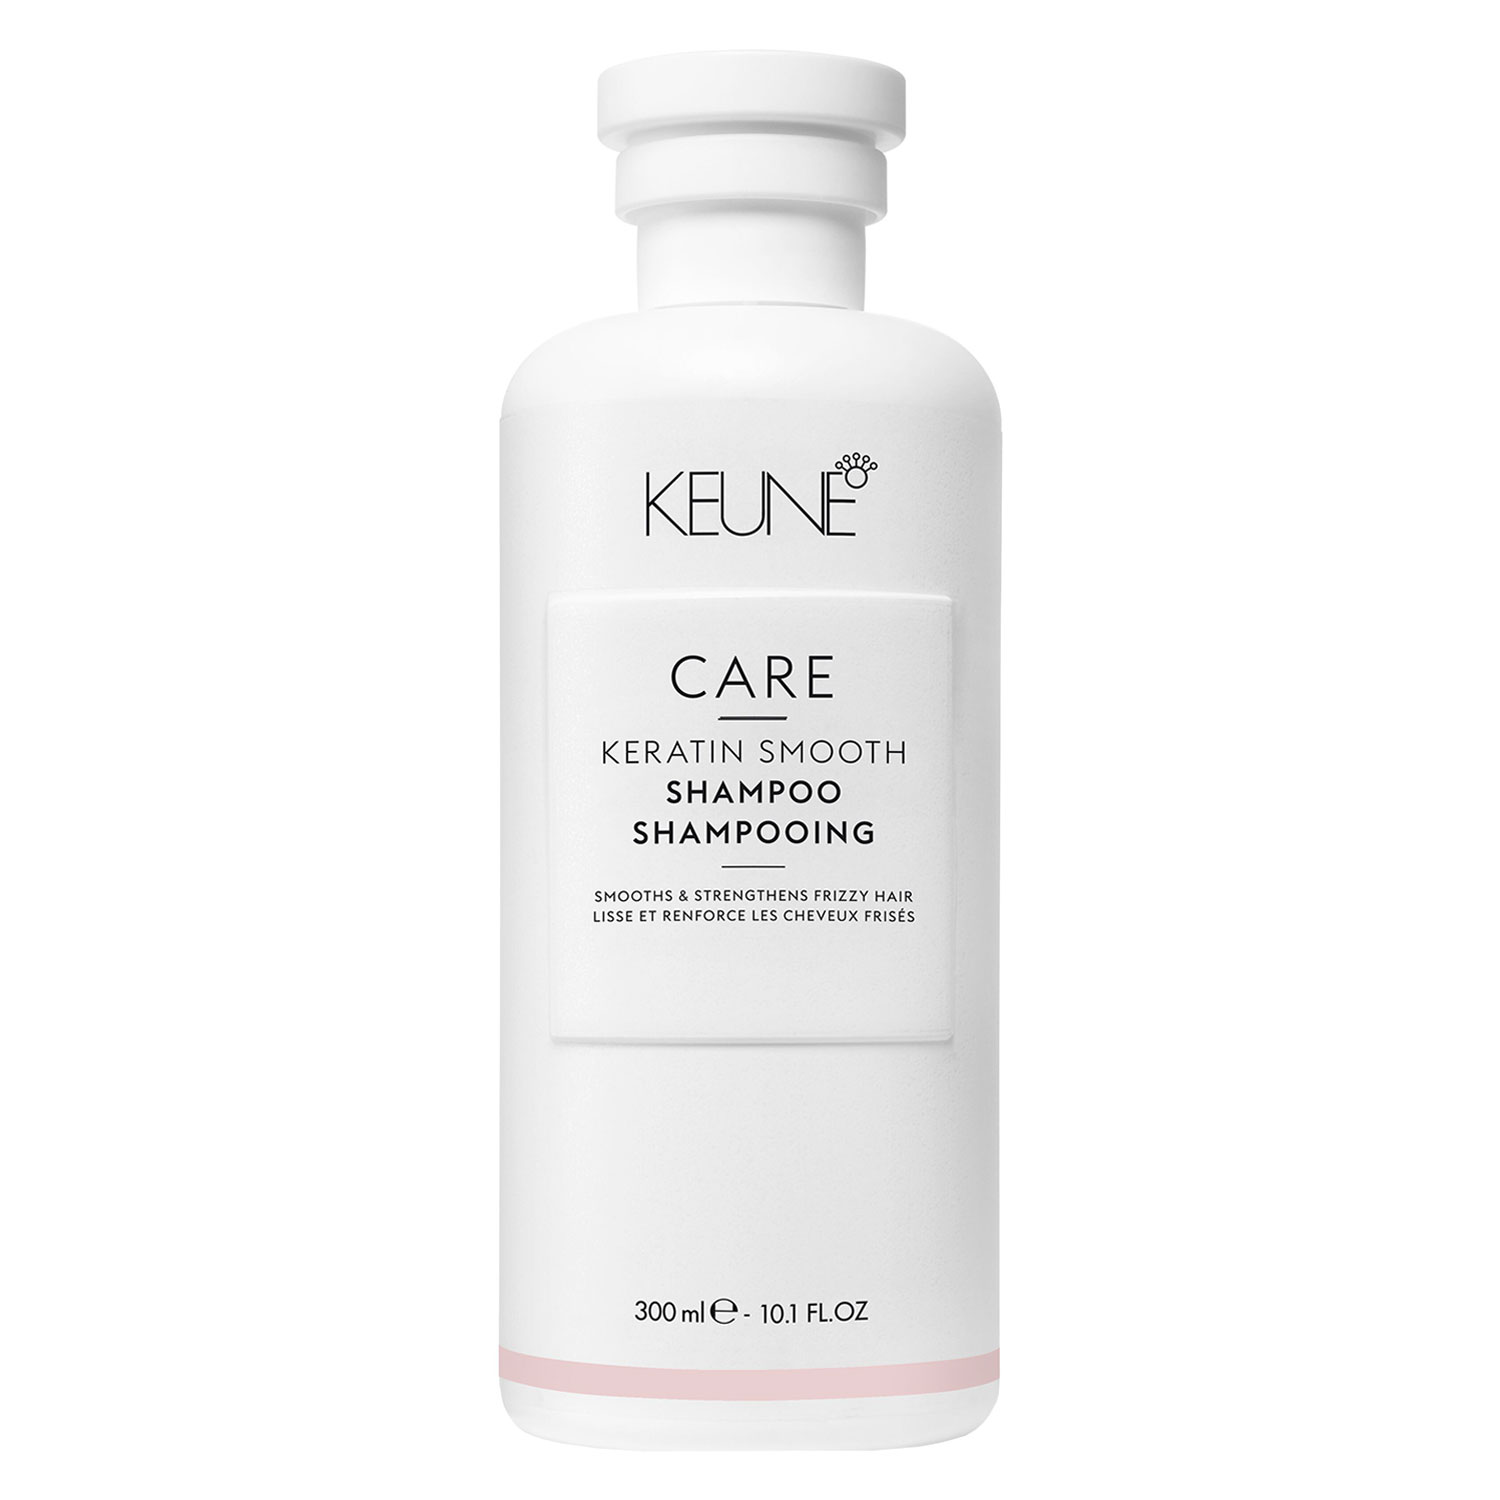 Keune Care - Keratin Smooth Shampoo